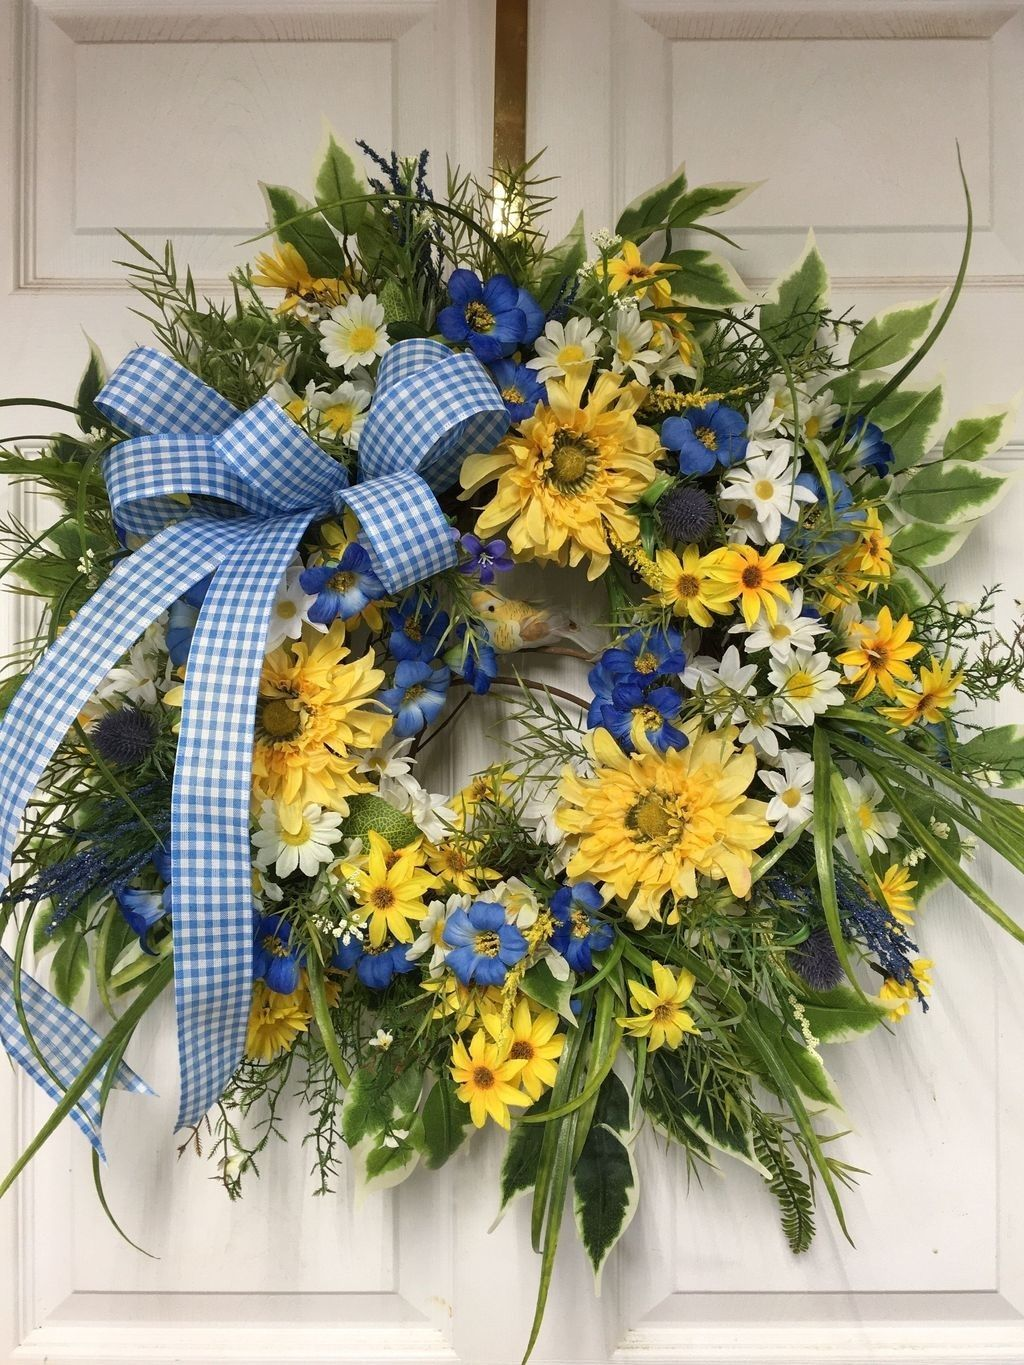 Inspiring Summer Wreath Design Ideas You Should Copy 08